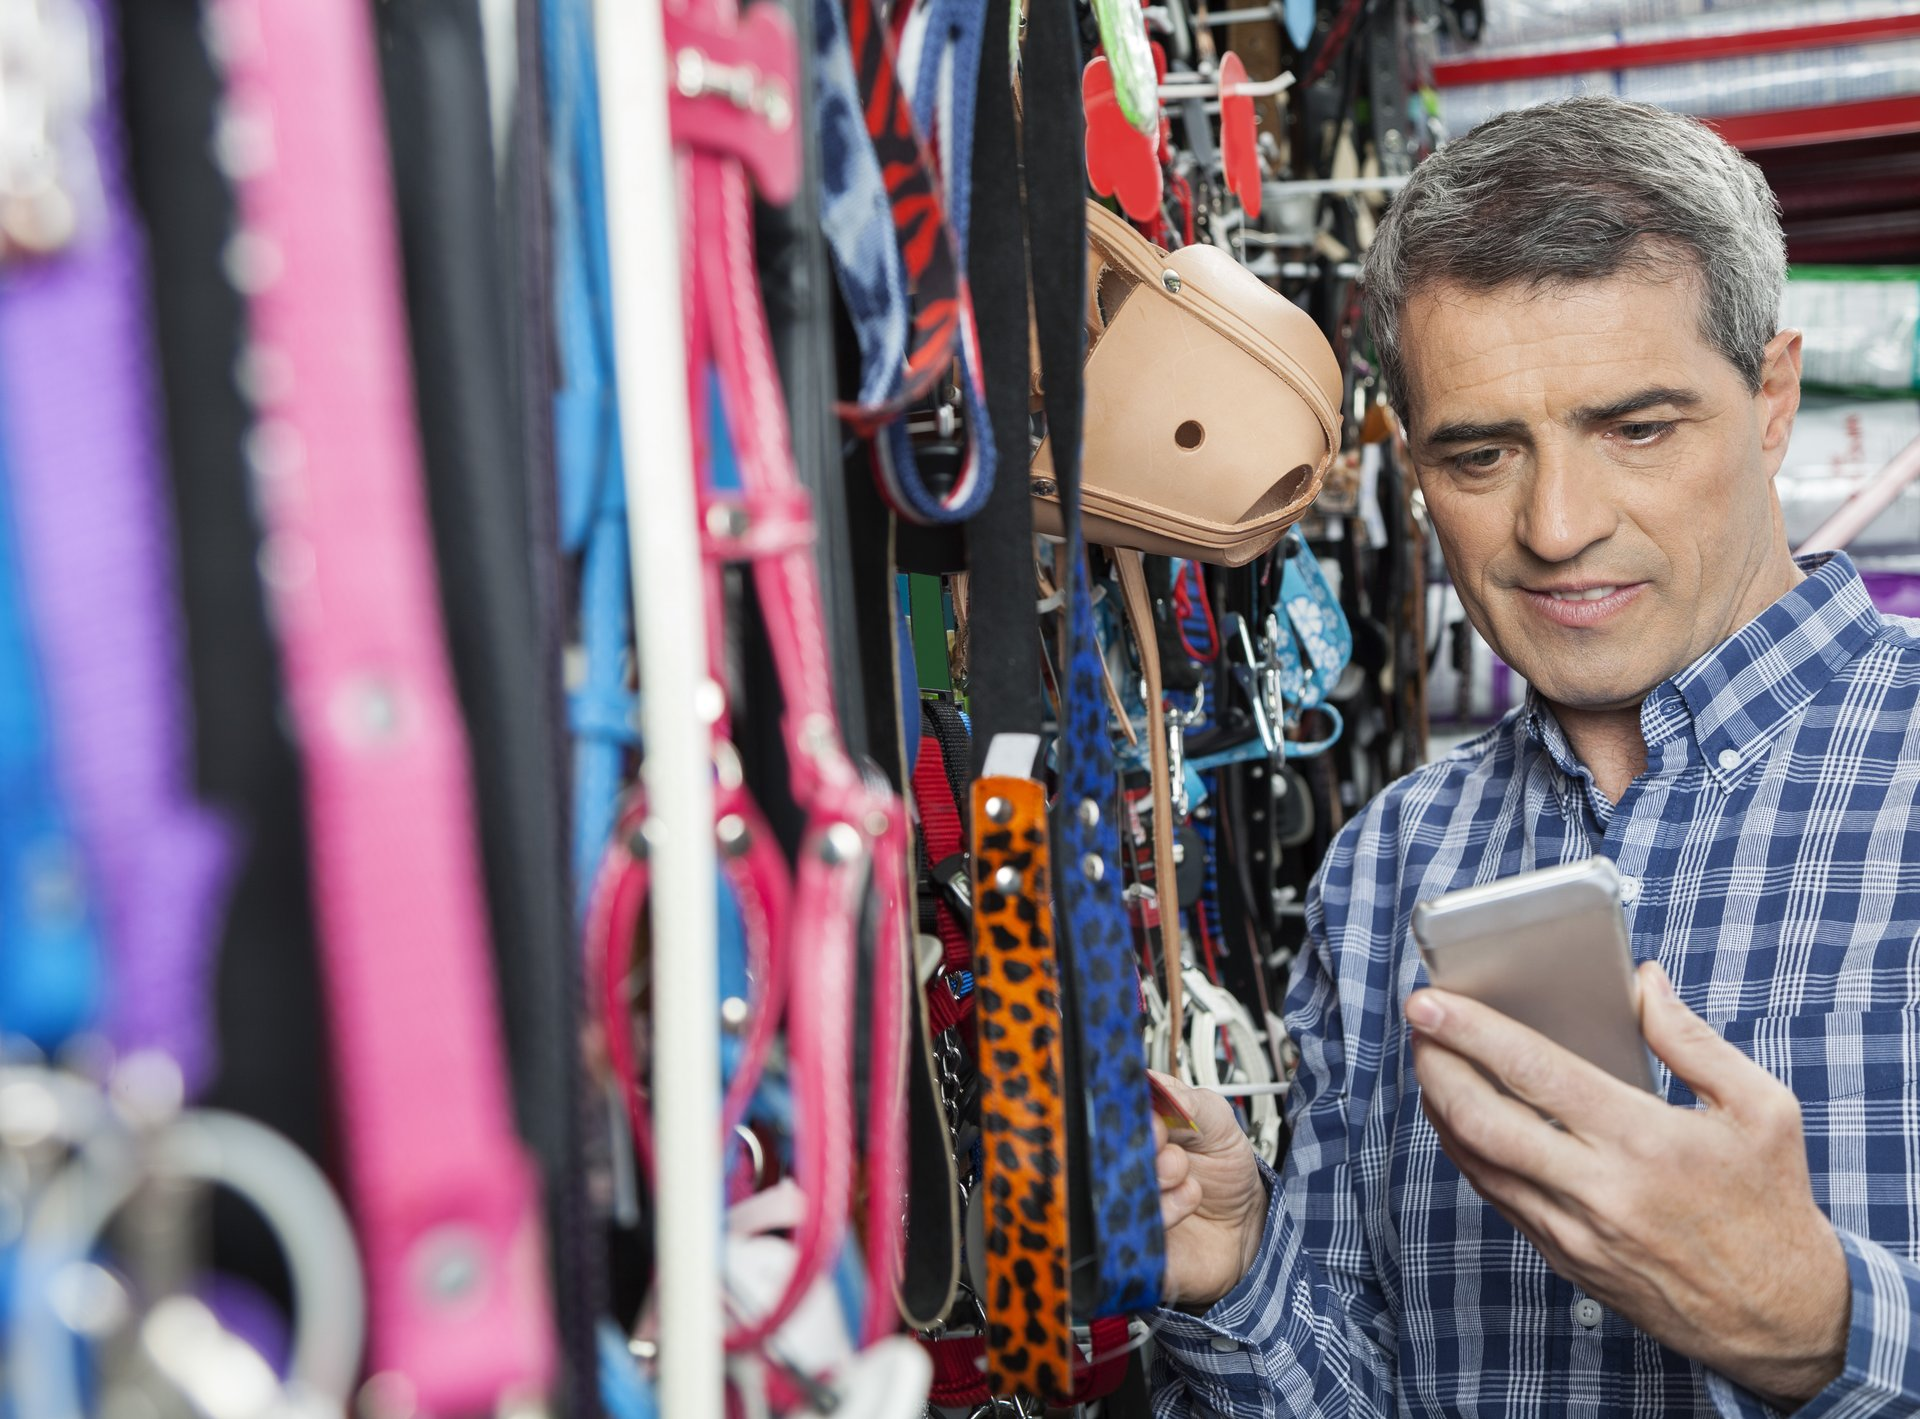 Man shopping, looking at cellphone